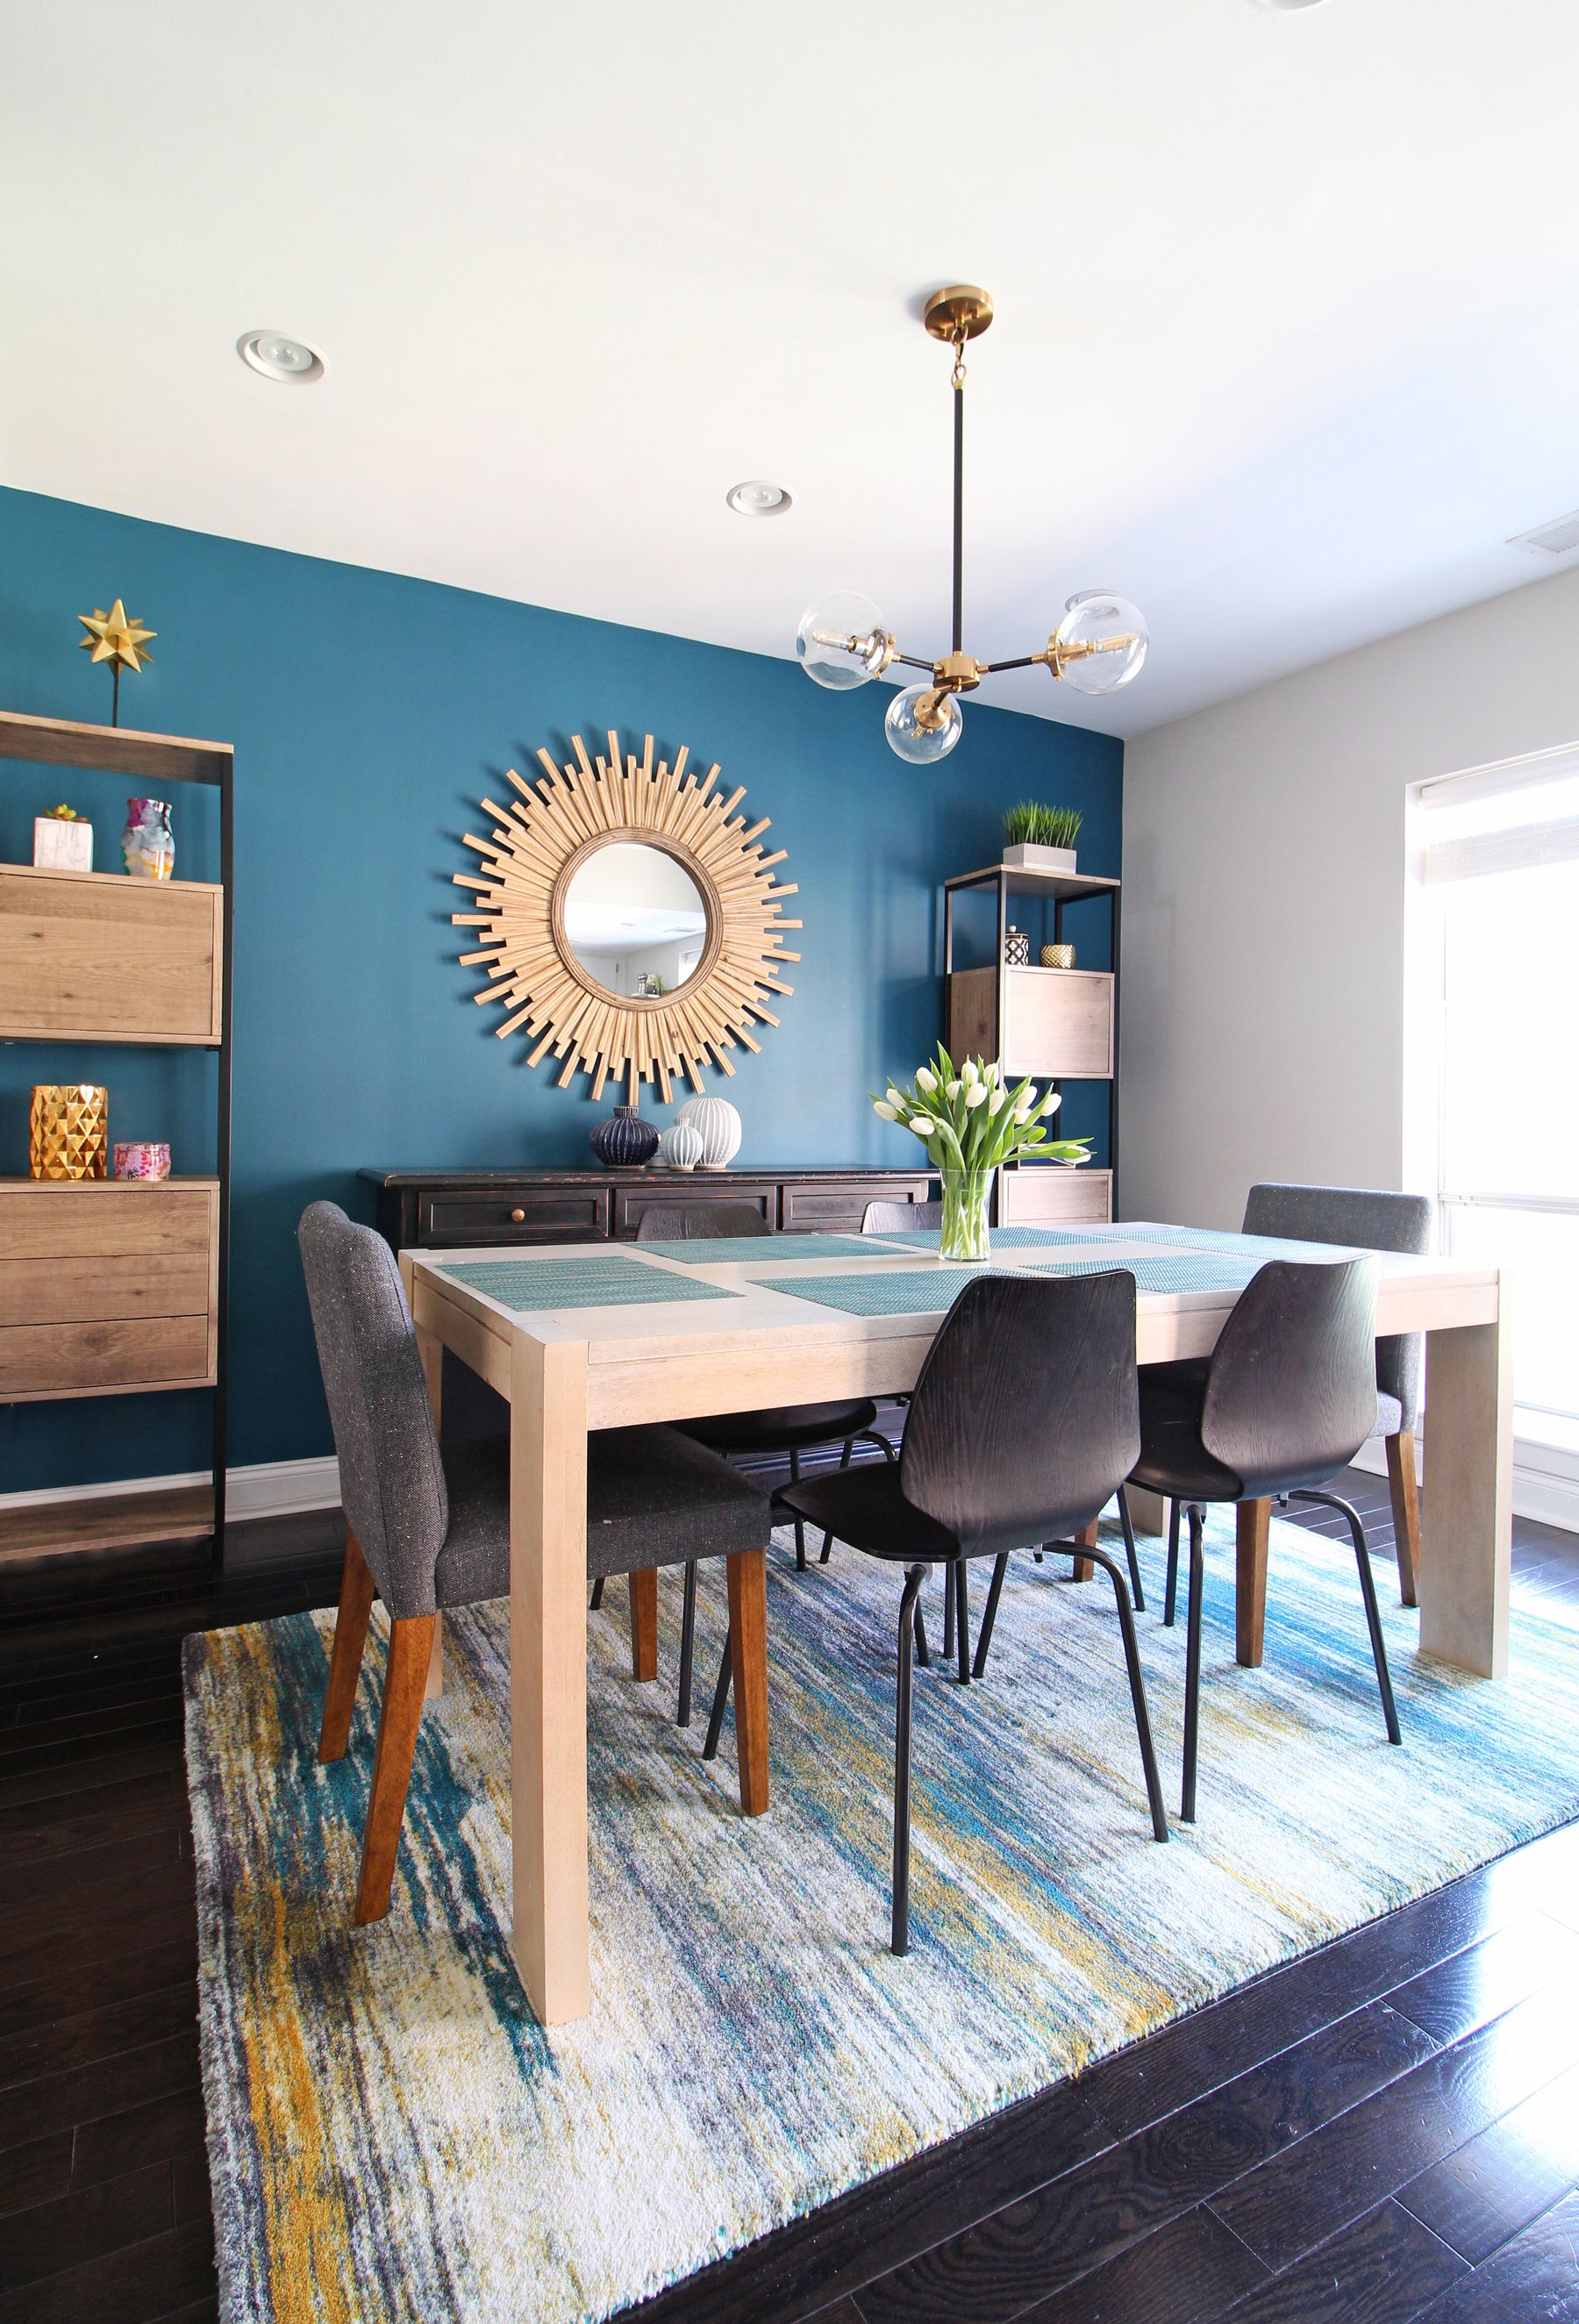 A cozy modern dining room in the heart of Philadelphia The teal